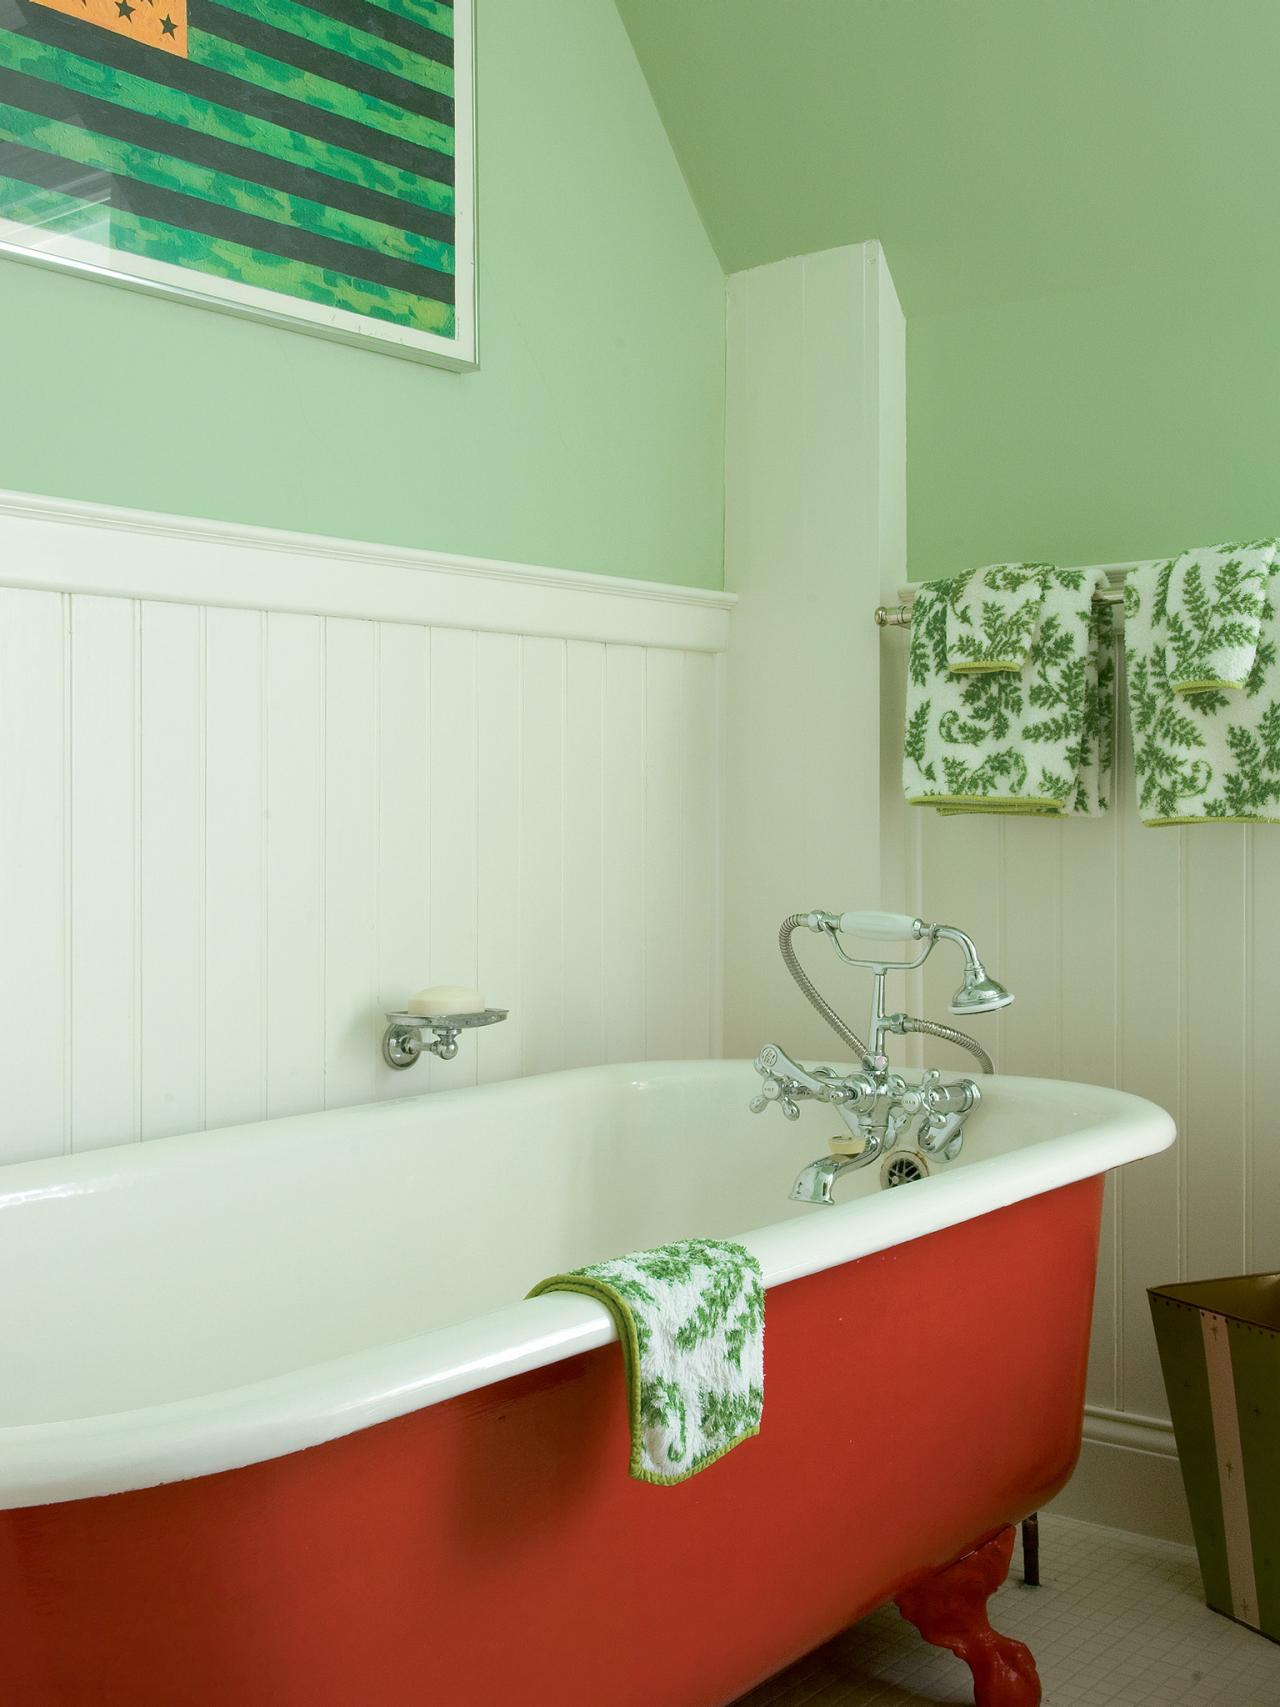 tub bathroom go vila slideshow clawfoot never out forever features style of classic in that ideas vintage bob